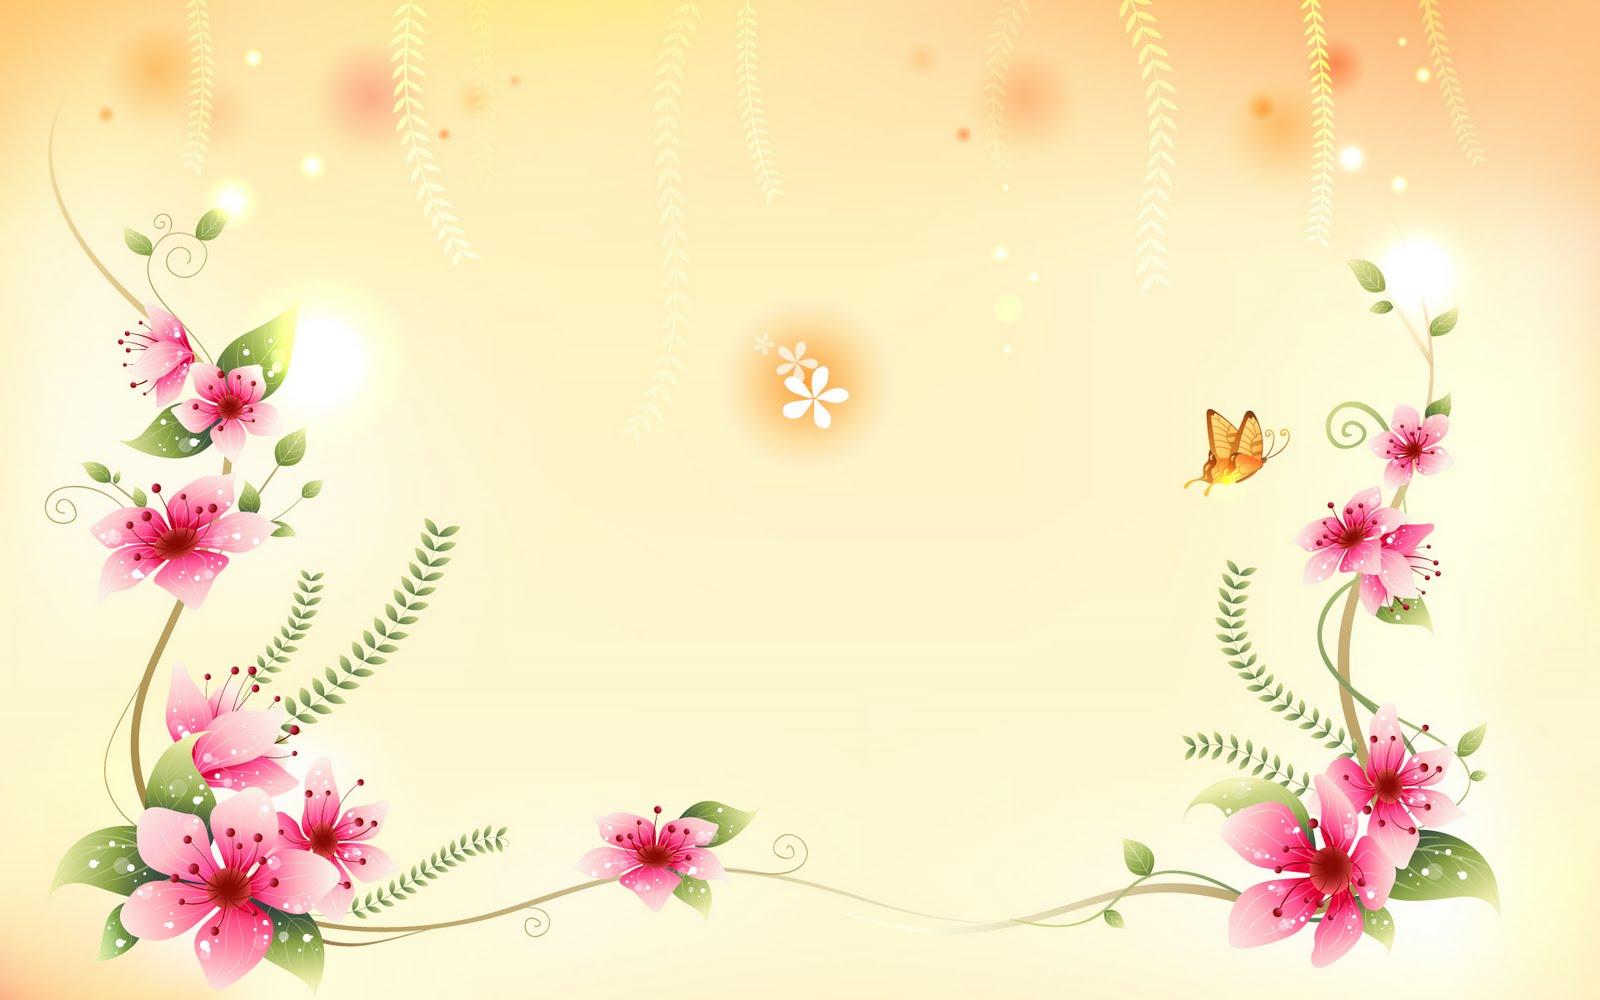 Free wallpaper backgrounds flowers banner transparent download Flower Background Wallpaper banner transparent download